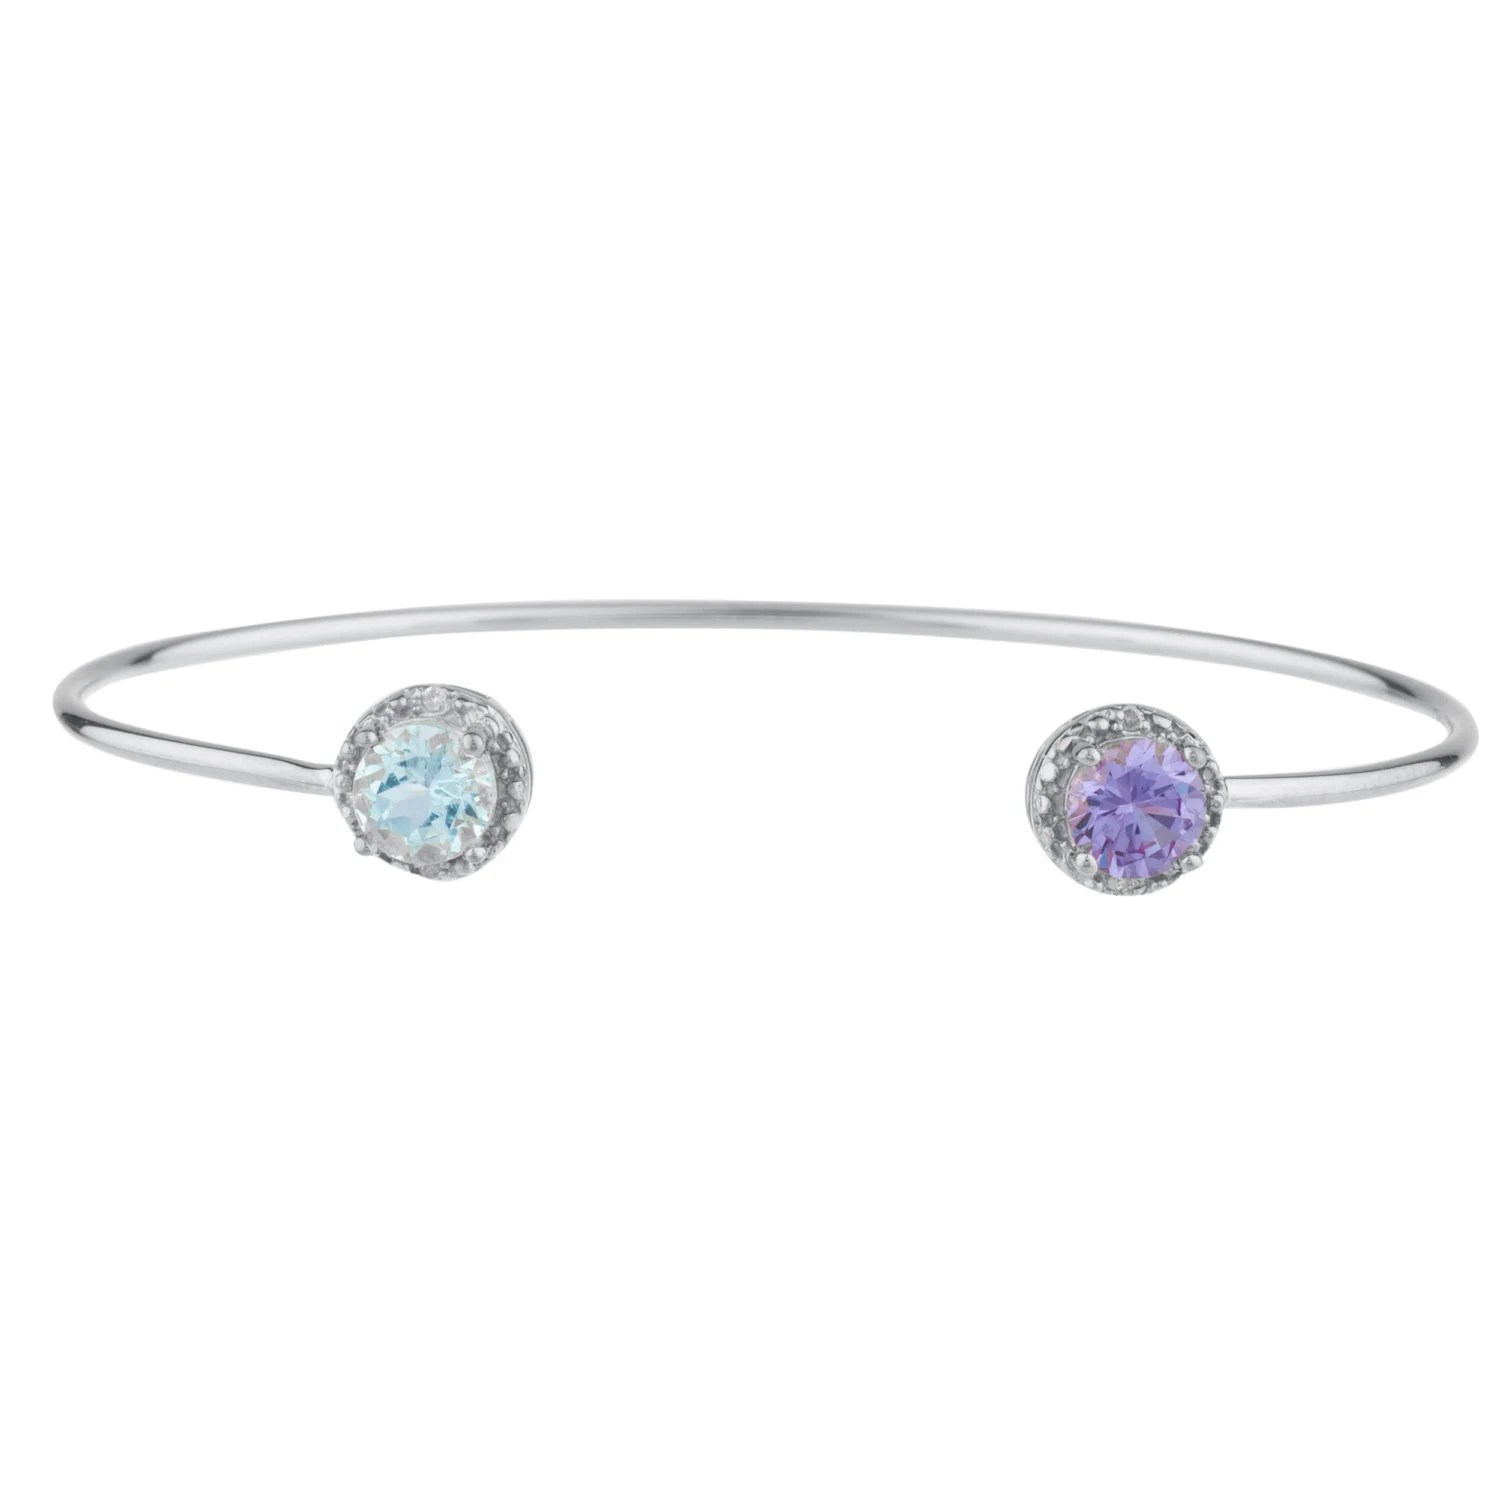 Genuine Aquamarine & Alexandrite Diamond Bangle Round Bracelet